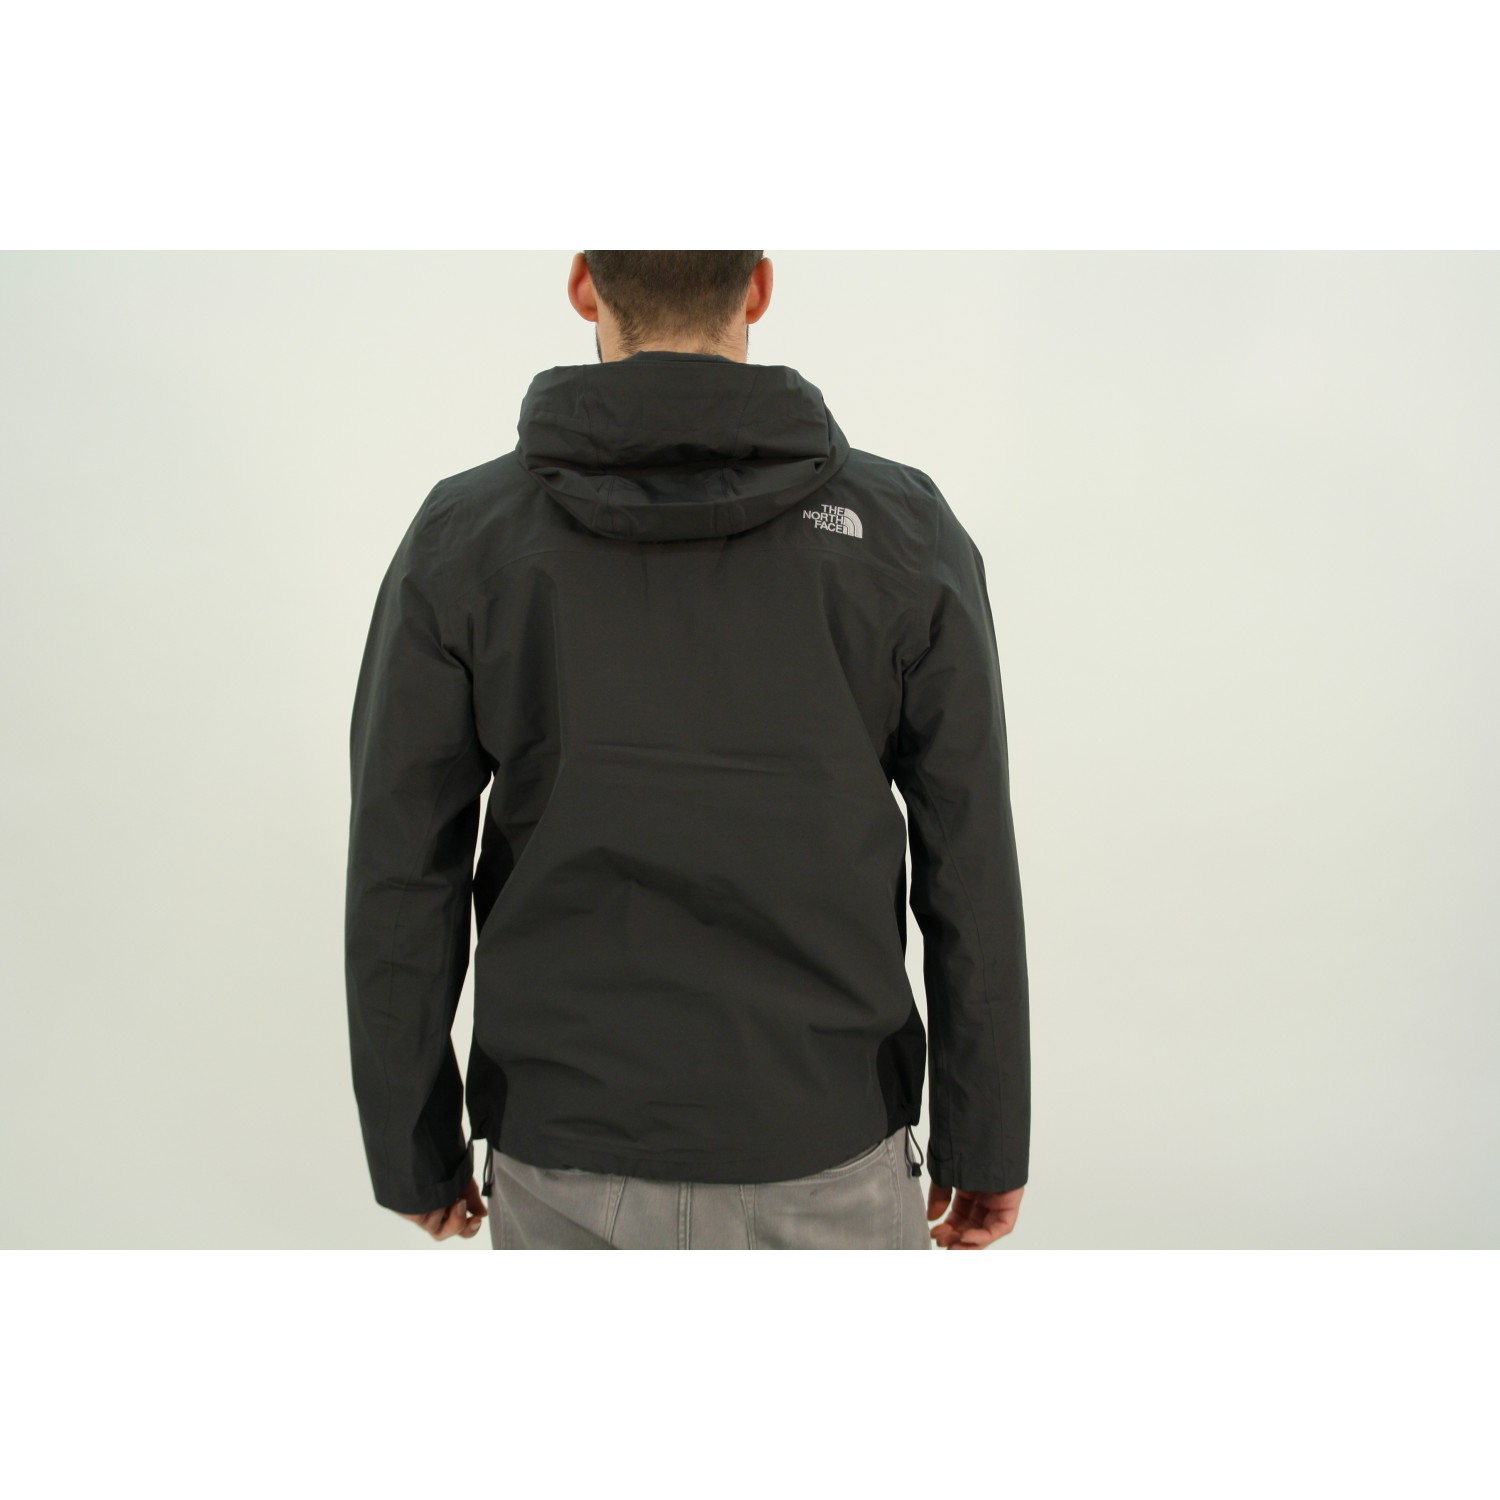 Nthe north face winterjacke